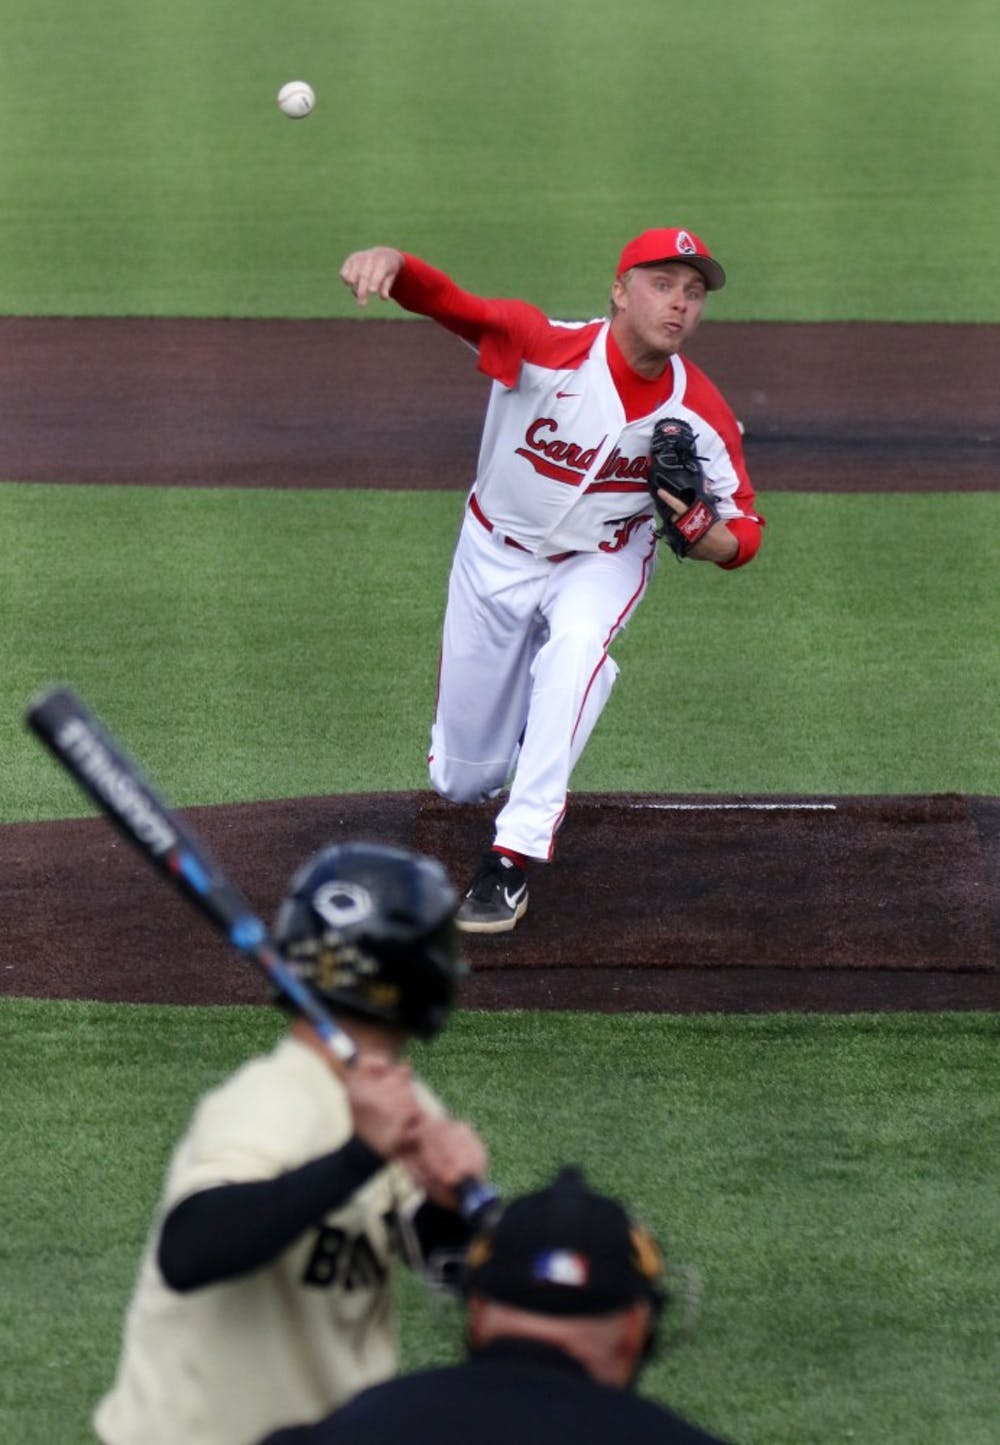 Ball State redshirt senior right-handed pitcher Brendan Burns pitches to Purdue freshman shortstop Evan Albrecht during the Cardinals' game against the Boilermakers March 19, 2019 at Ball Diamond at First Merchants Ballpark Complex in Muncie, IN. Burns started pitching for the Cardinals in the third inning. Paige Grider, DN